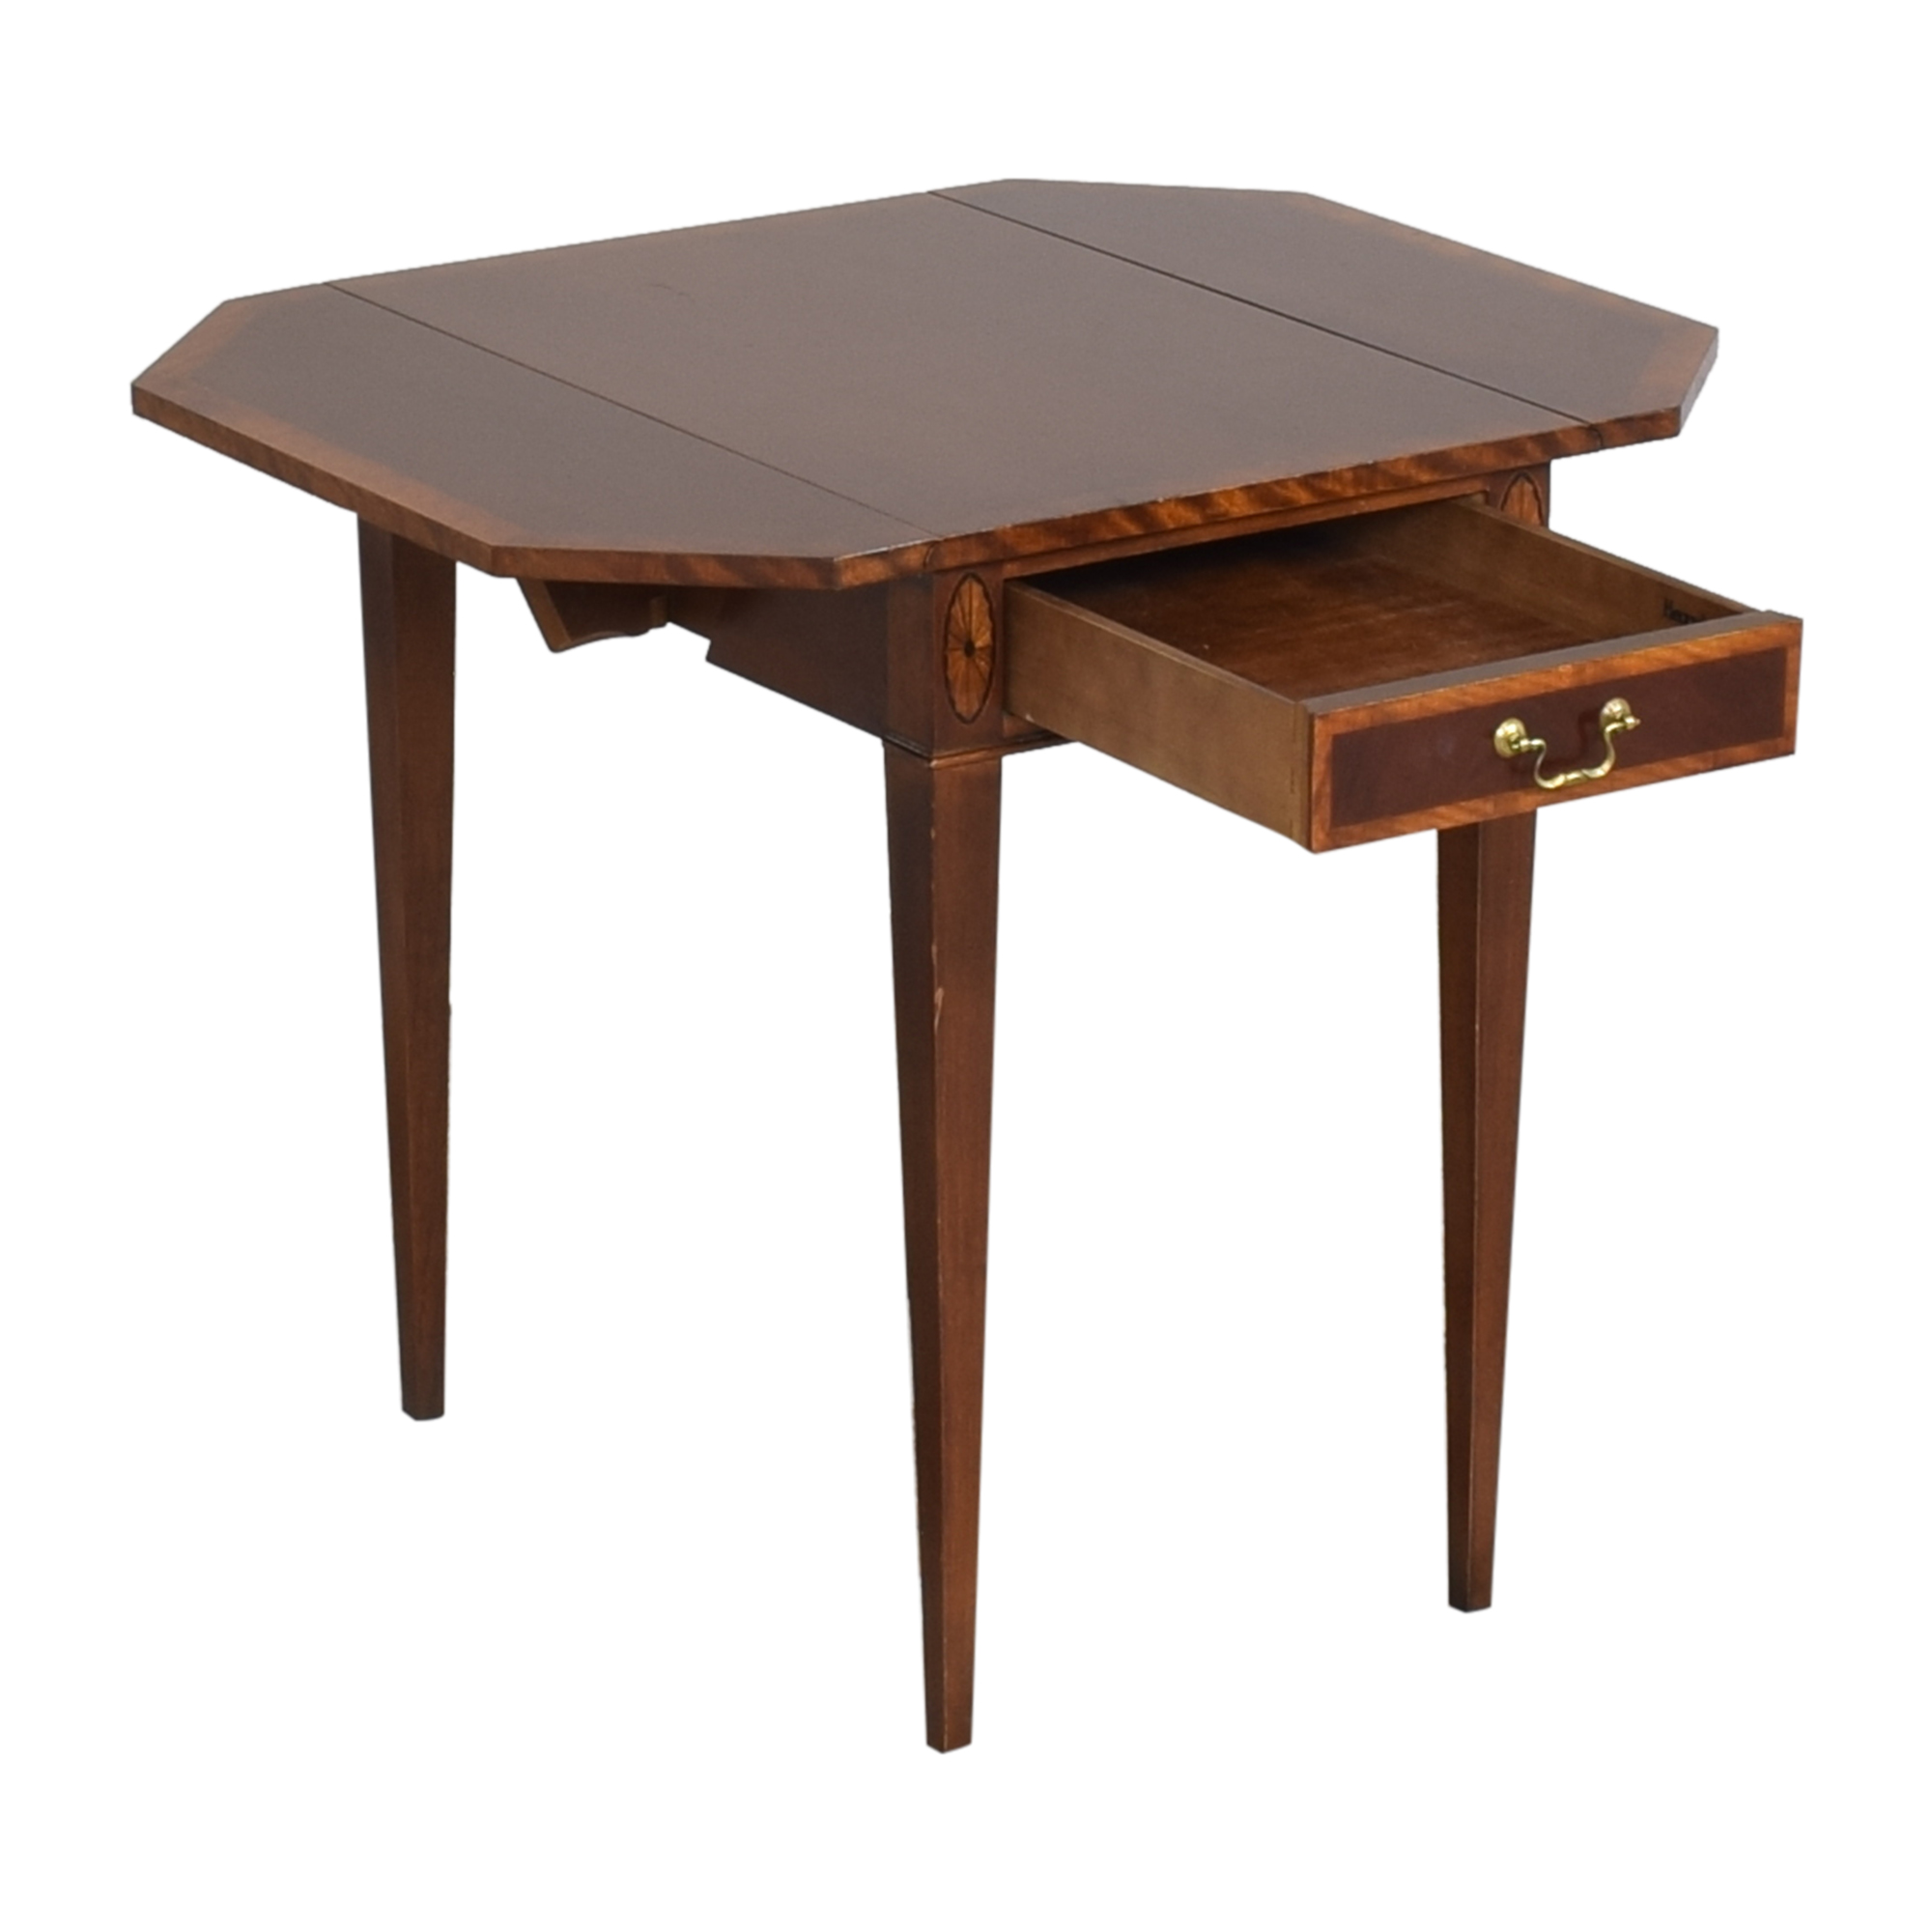 Henredon Furniture Henredon Drop Leaf Accent Table price